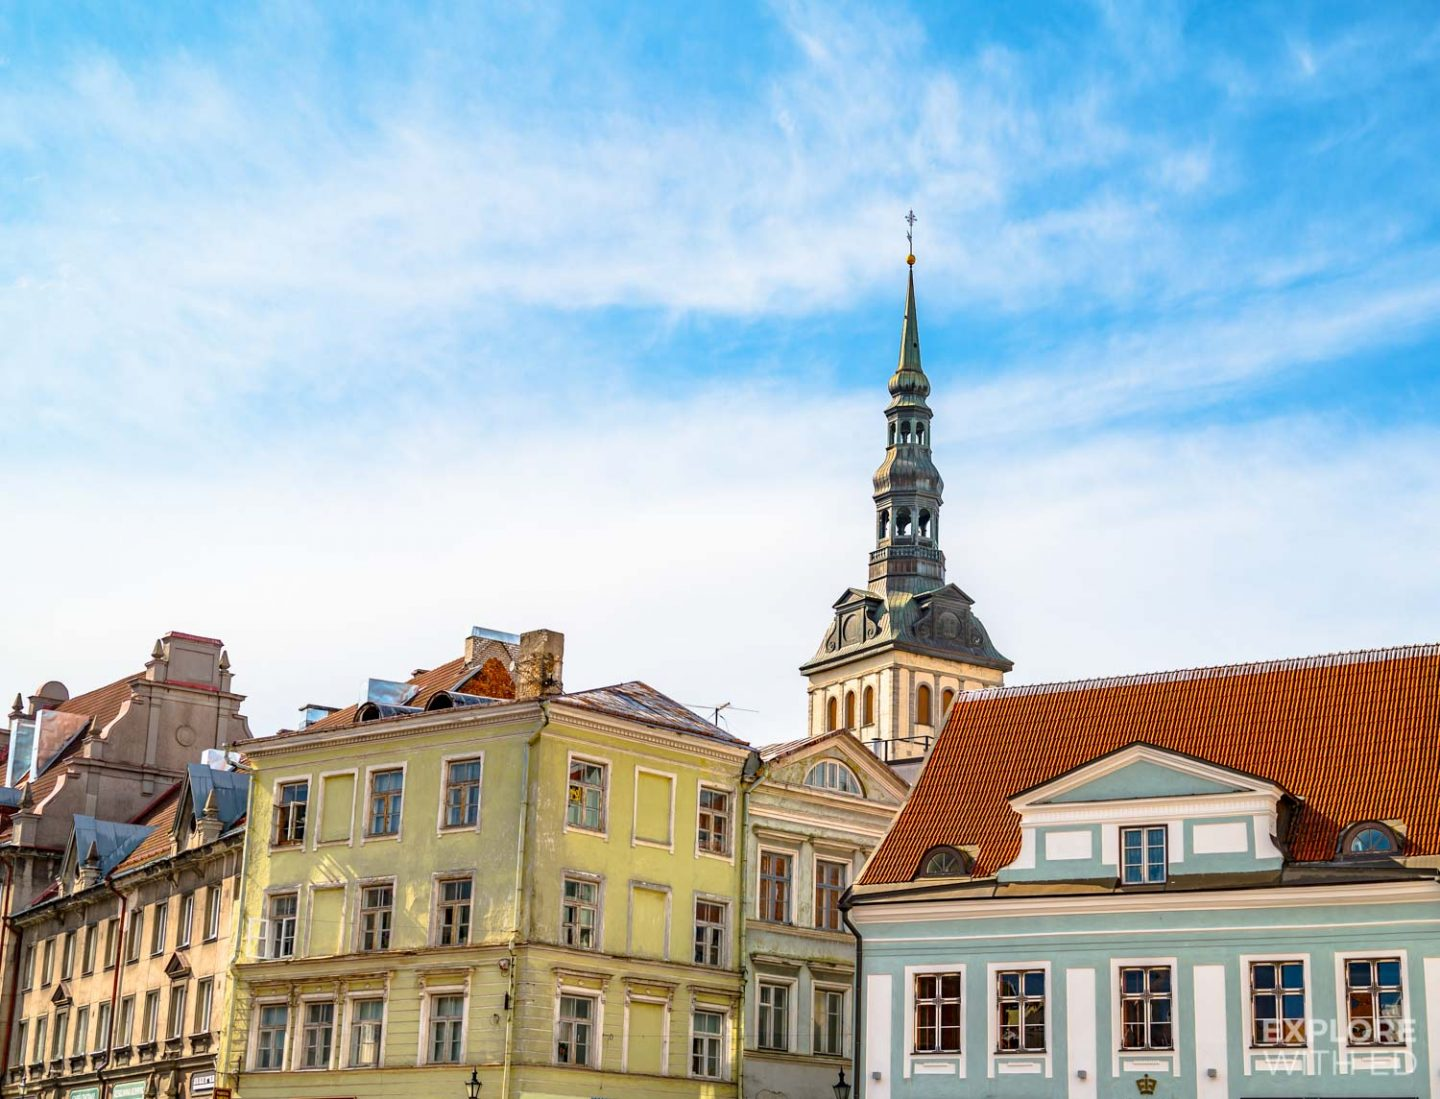 Characterful buildings line Tallinn's Old Town Square, backed by enchanting church spires.